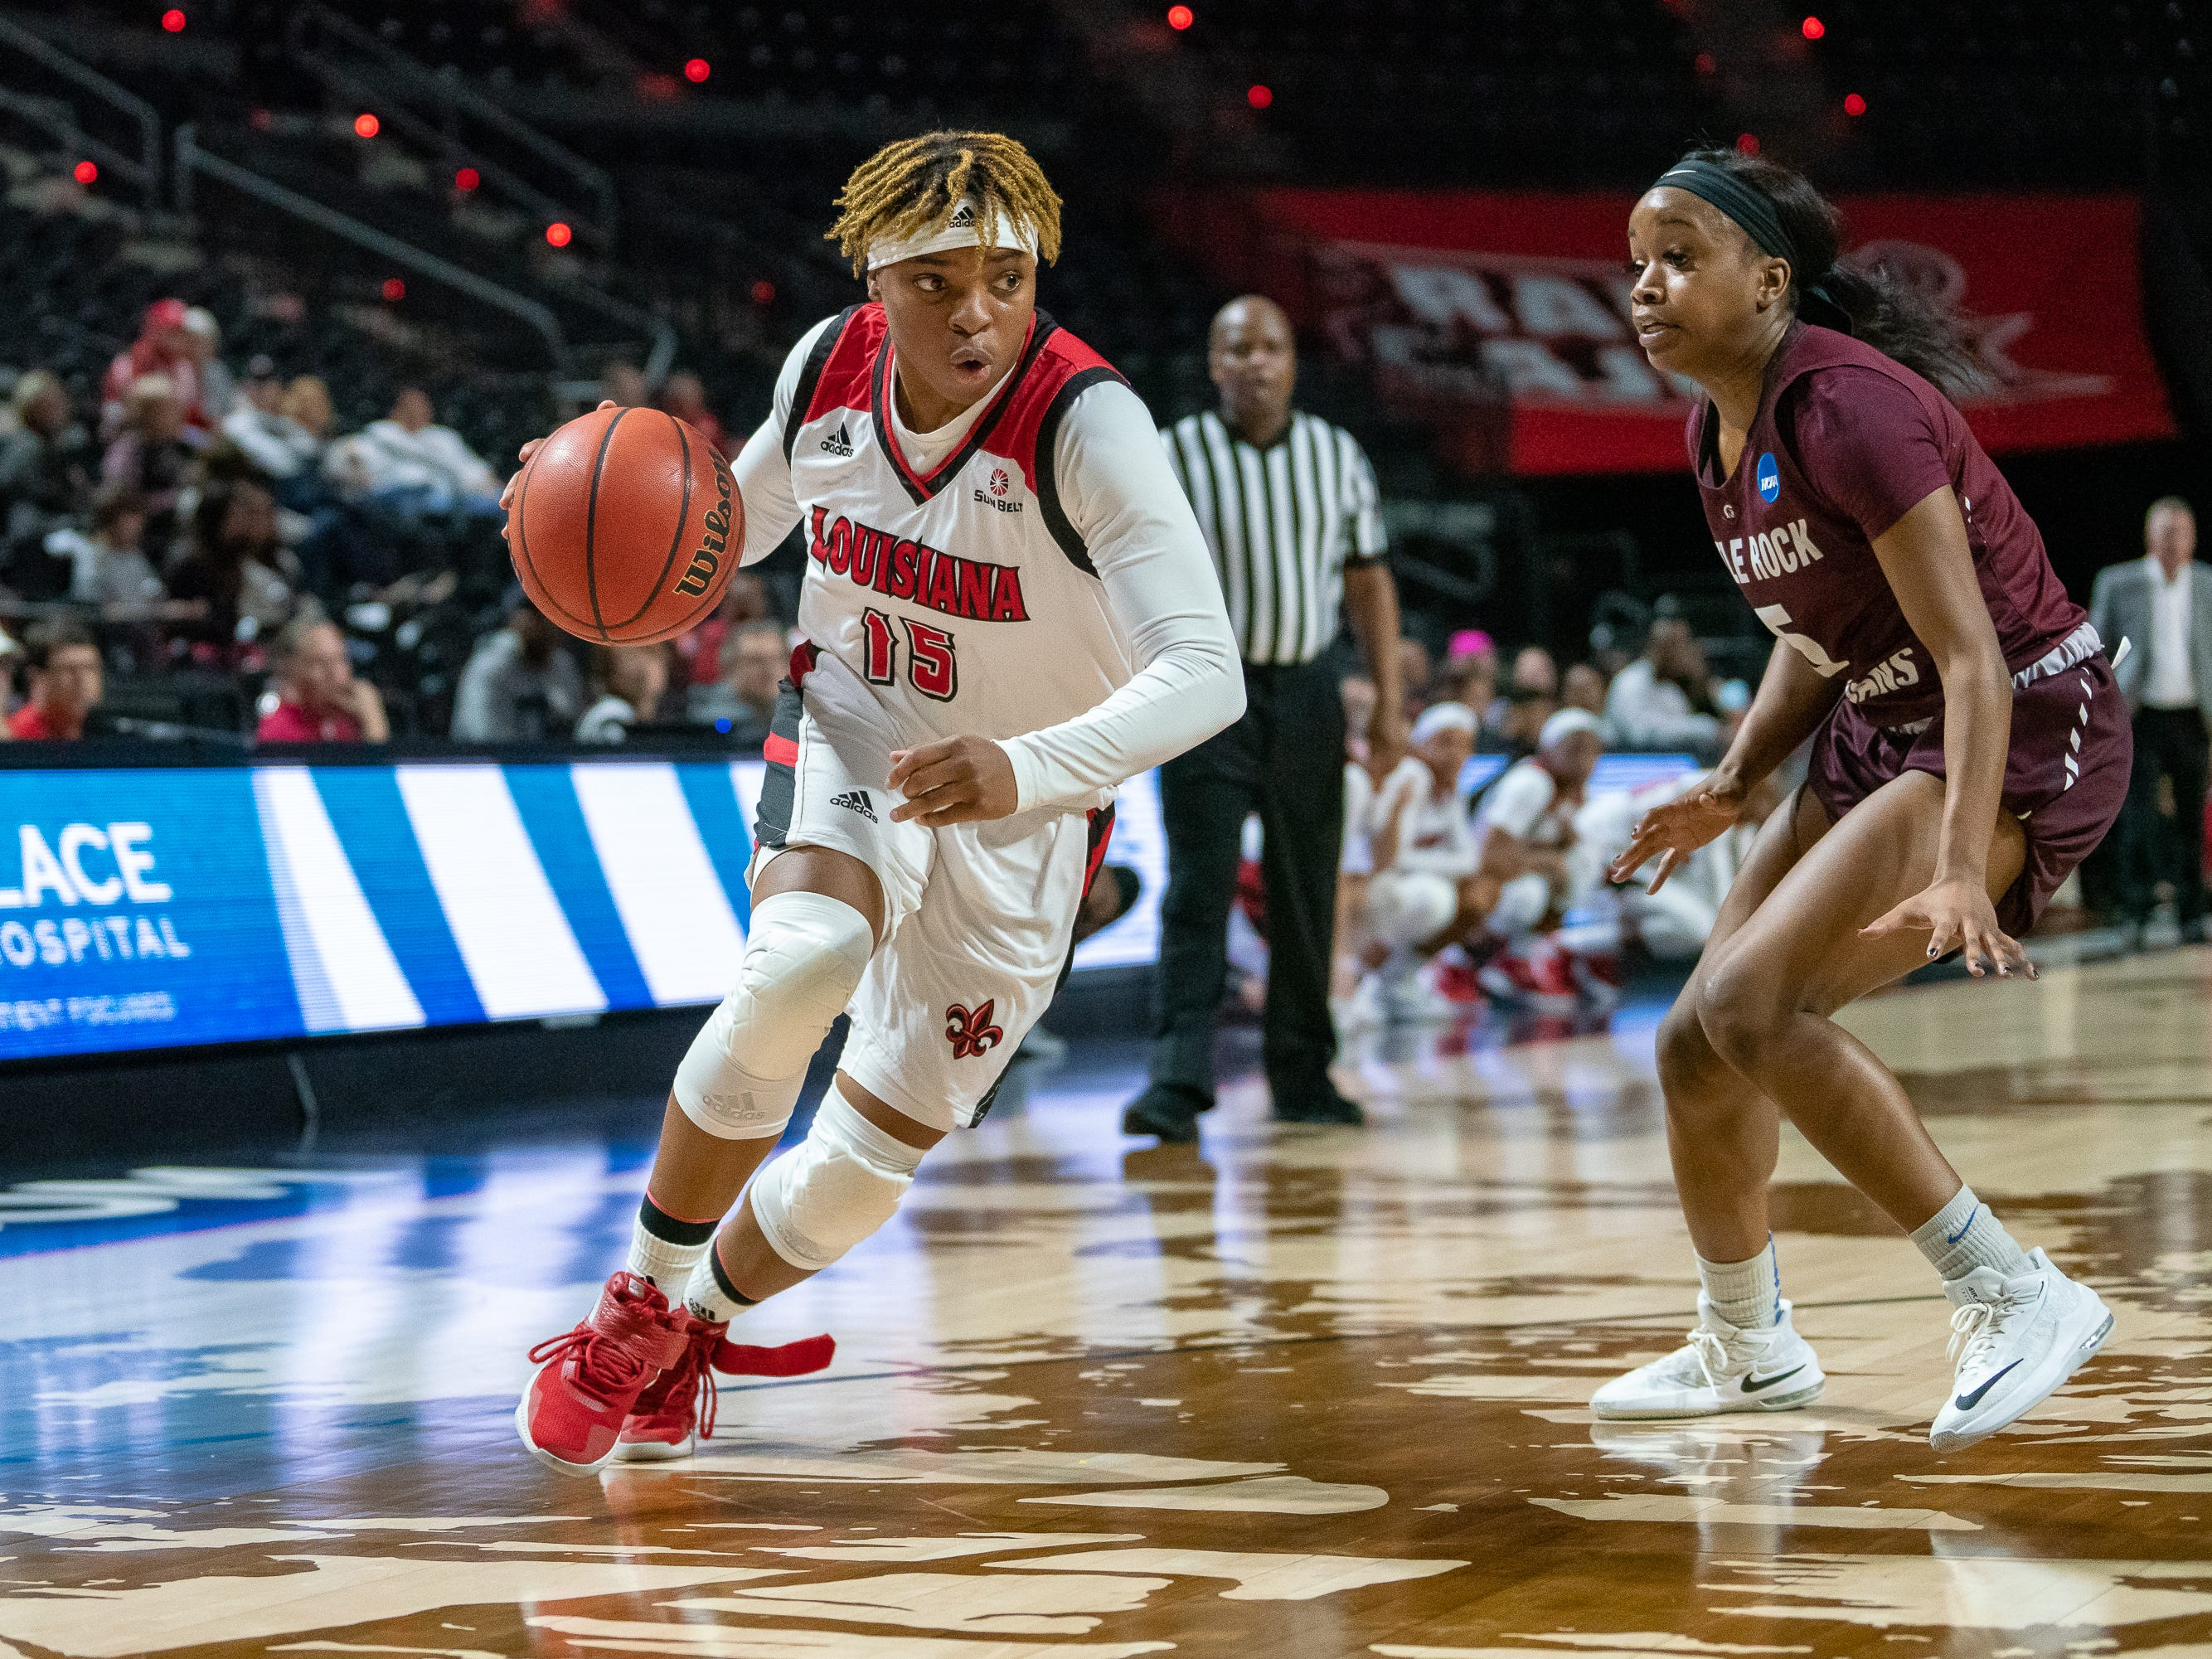 UL's Diamond Morrison drives the ball to the basket as the Ragin' Cajuns take on the Little Rock Trojans at the Cajundome on Thursday, March 7, 2019.